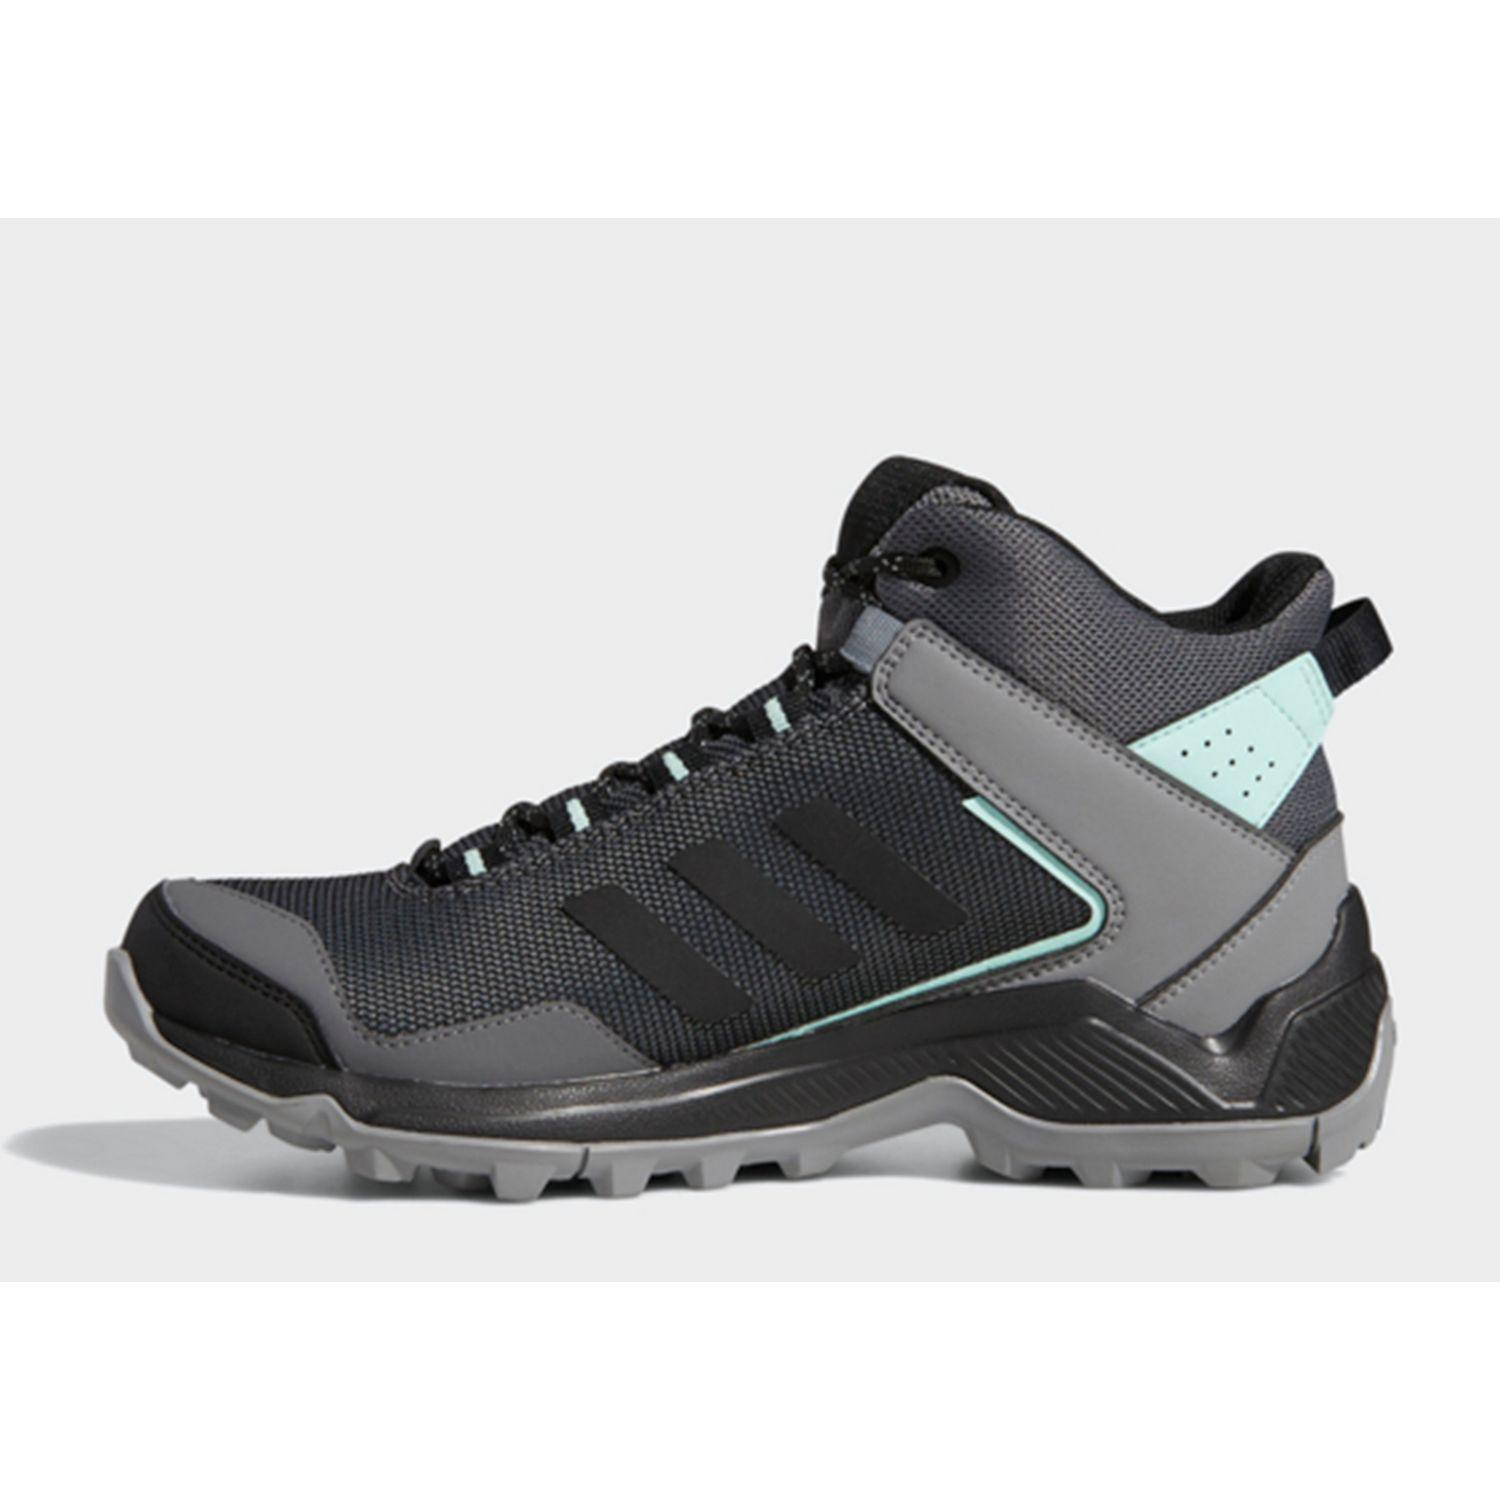 3c3a5e89a adidas Terrex Eastrail Mid Gtx Shoes in Black for Men - Lyst